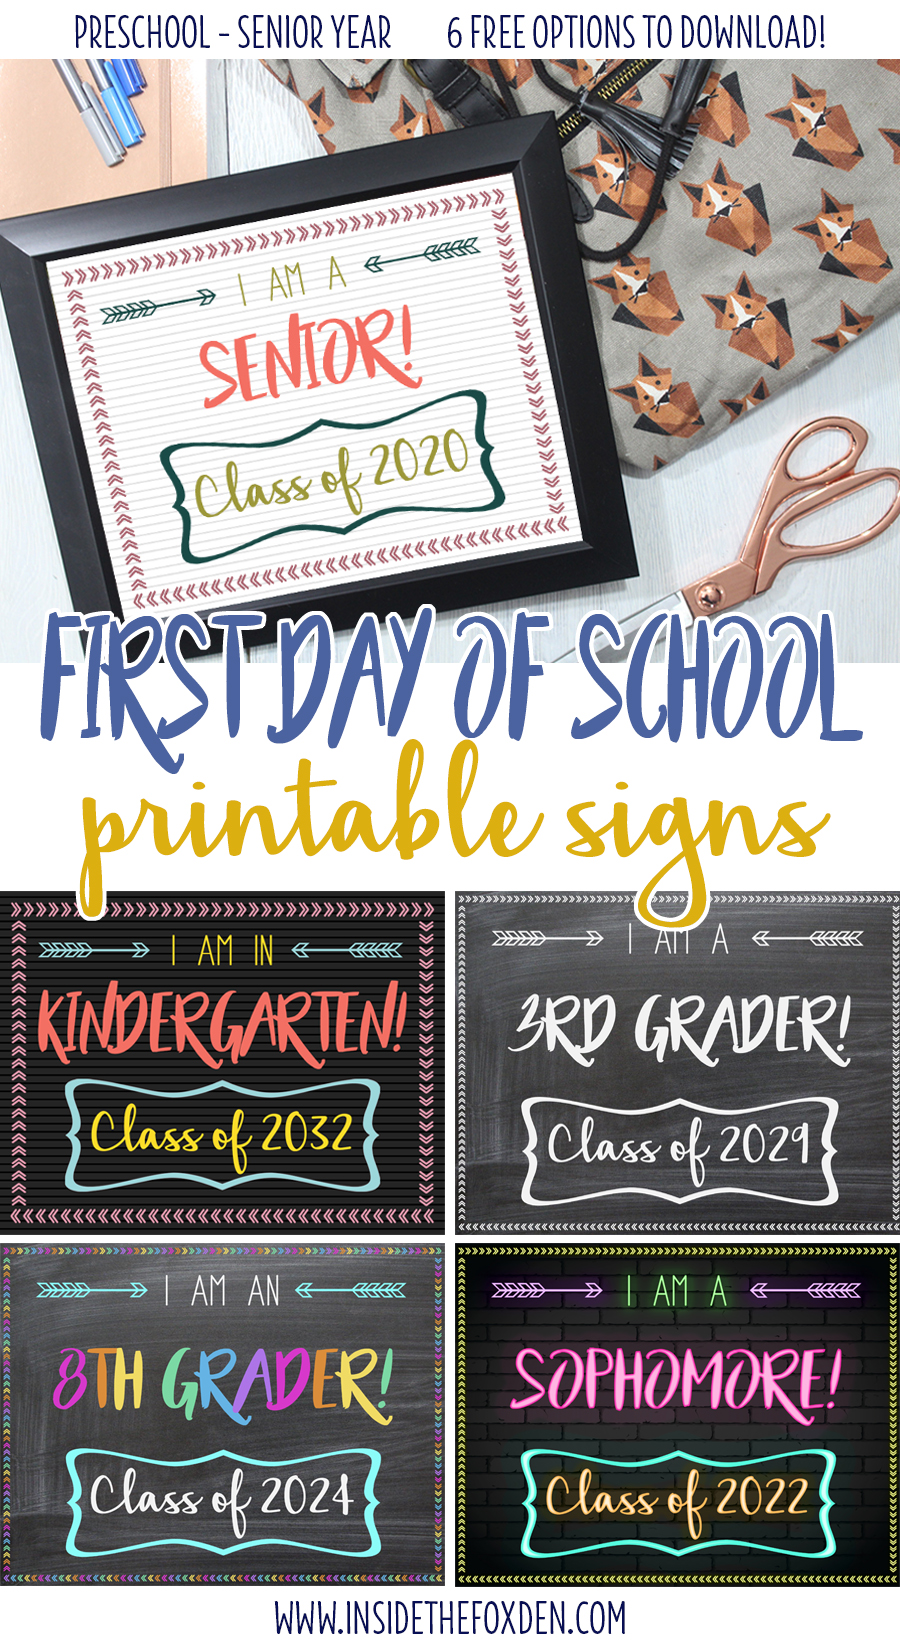 photo relating to First Day of School Sign Printable named Absolutely free Very first Working day of Faculty Printable Symptoms